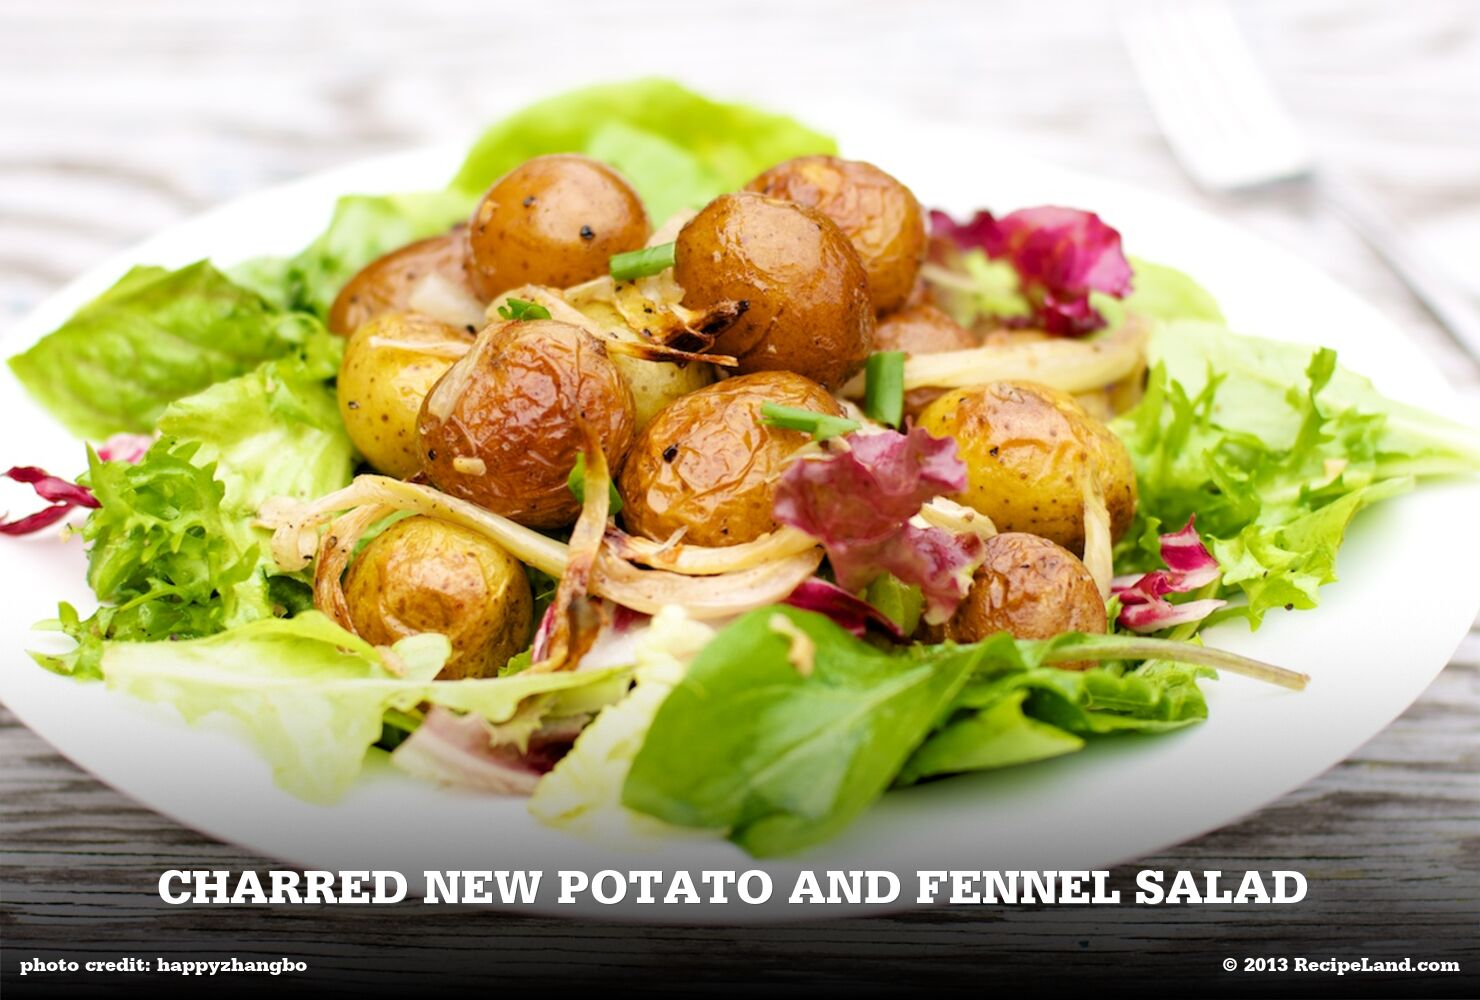 Charred New Potato and Fennel Salad